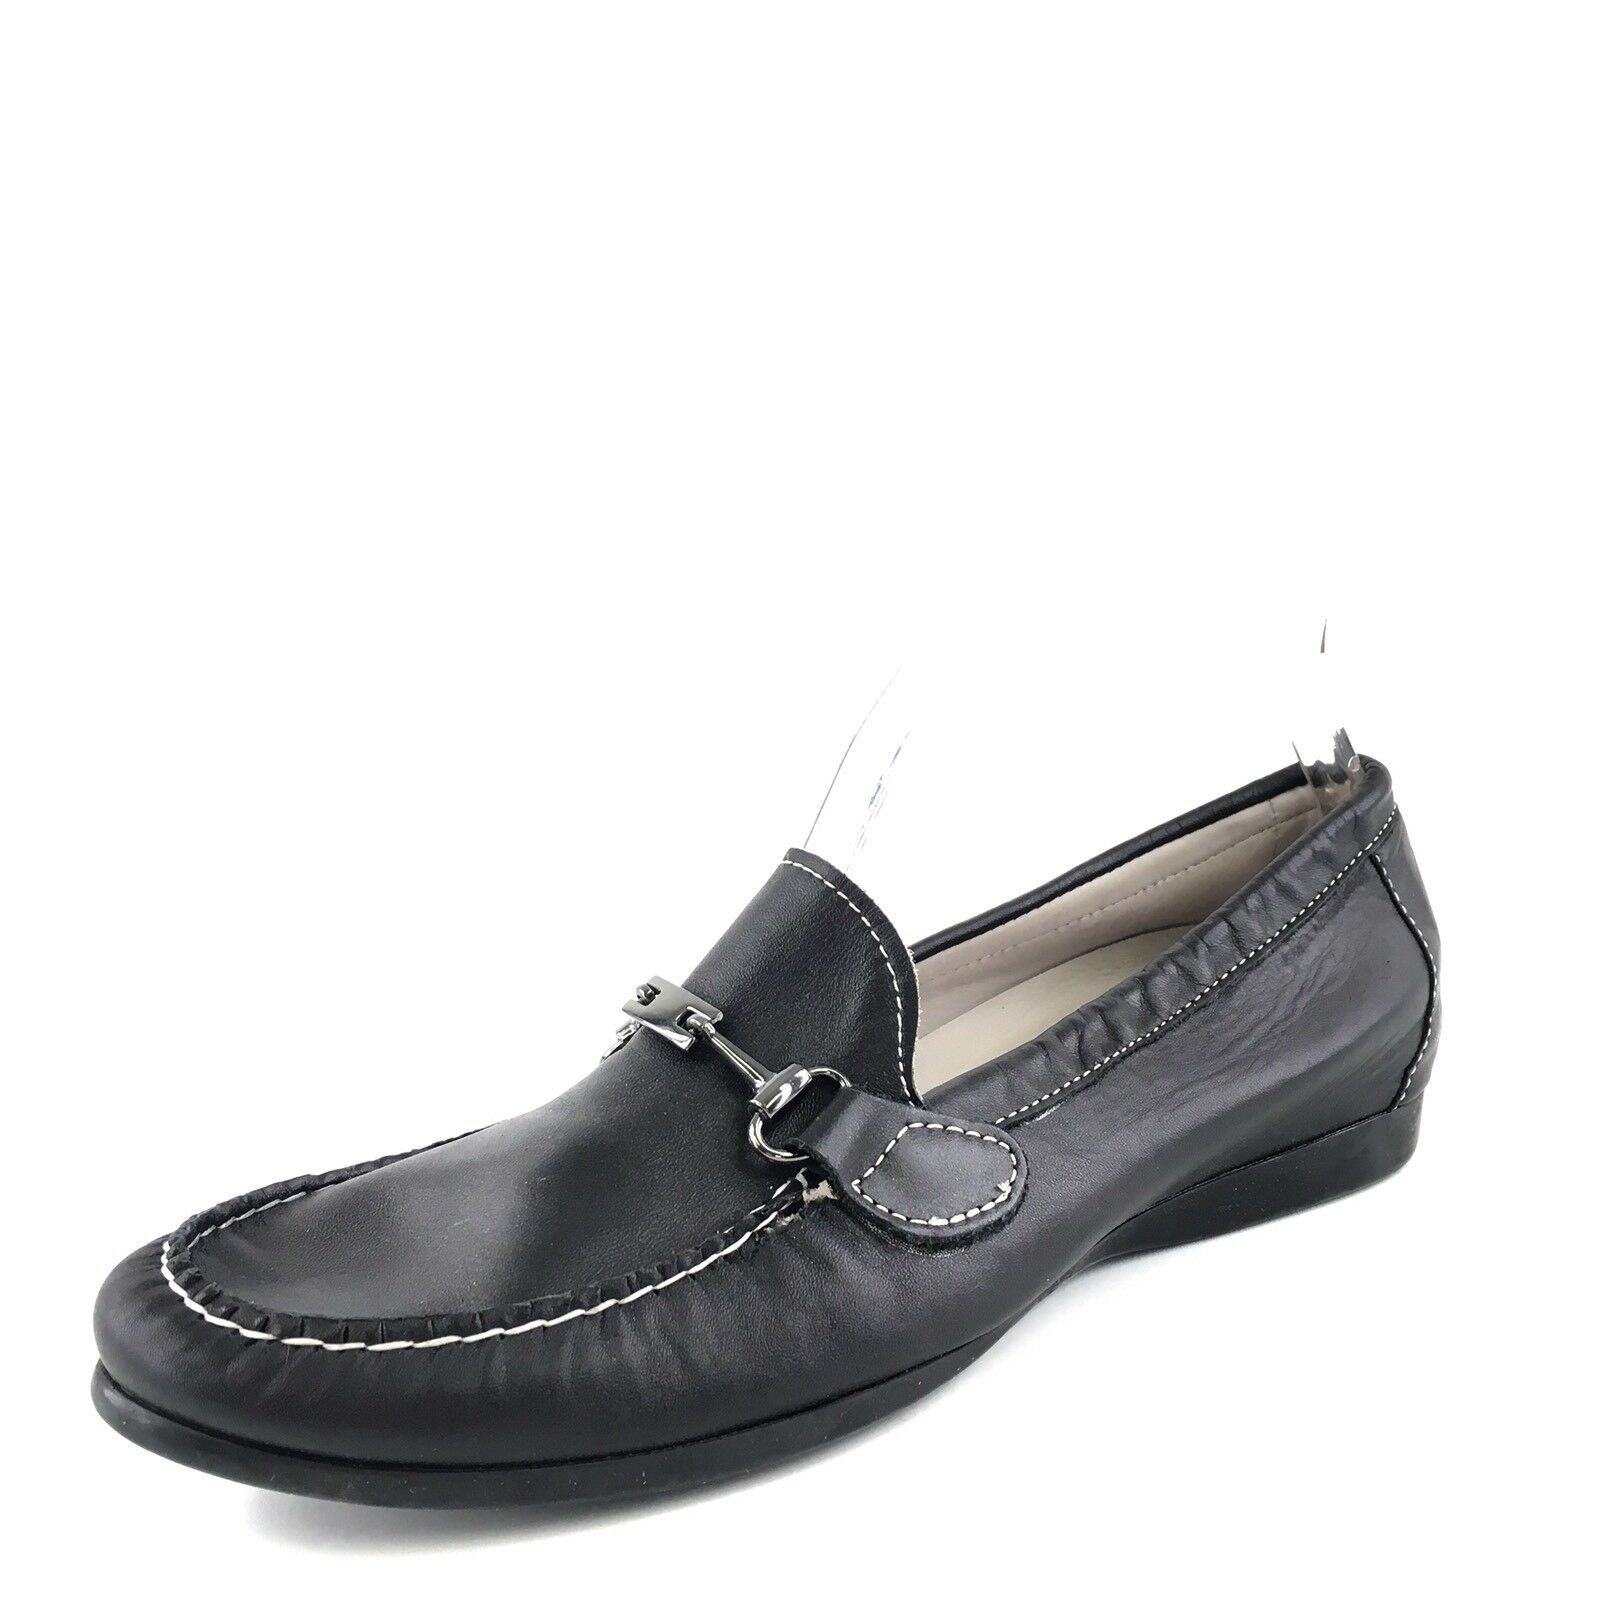 *Womens MUNRO Black Leather Loafers Shoes Sz. 7.5 N NEW!